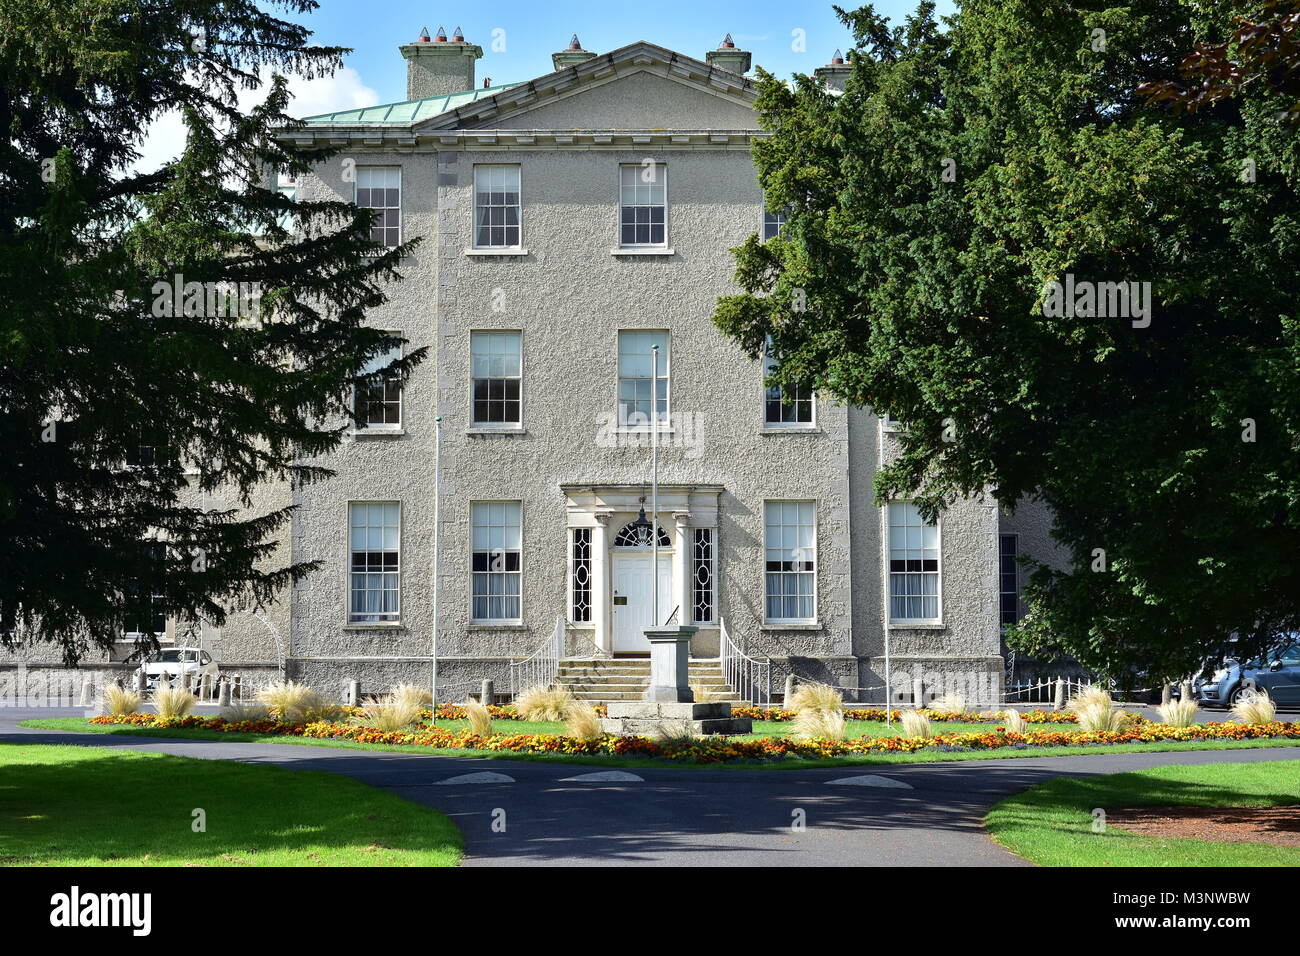 Administration building on grounds of St Patrick's College in university town of Maynooth in Ireland. - Stock Image